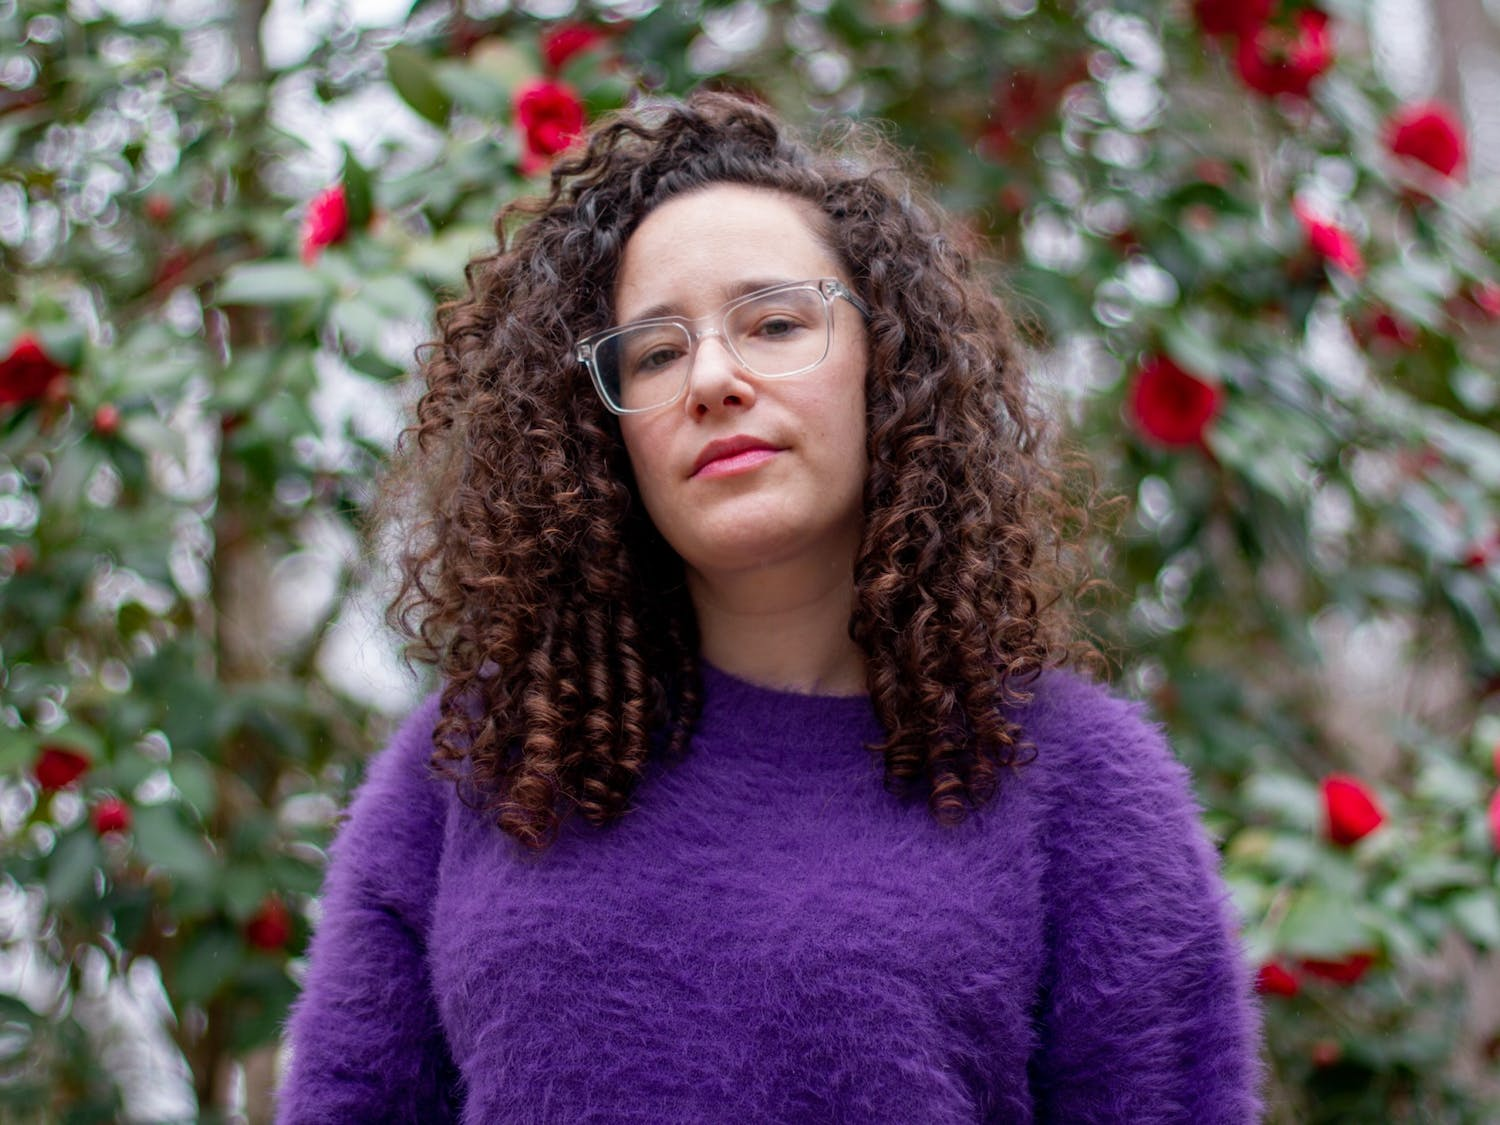 """Rachel Kiel, a songwriter and musician based in Carrboro, poses for a portrait at her home in Carrboro on Tuesday, Mar. 23, 2021. """"I've loved every type of music since I was young,"""" says Kiel. """"To live here [and] write songs forever... I'm down for that."""""""